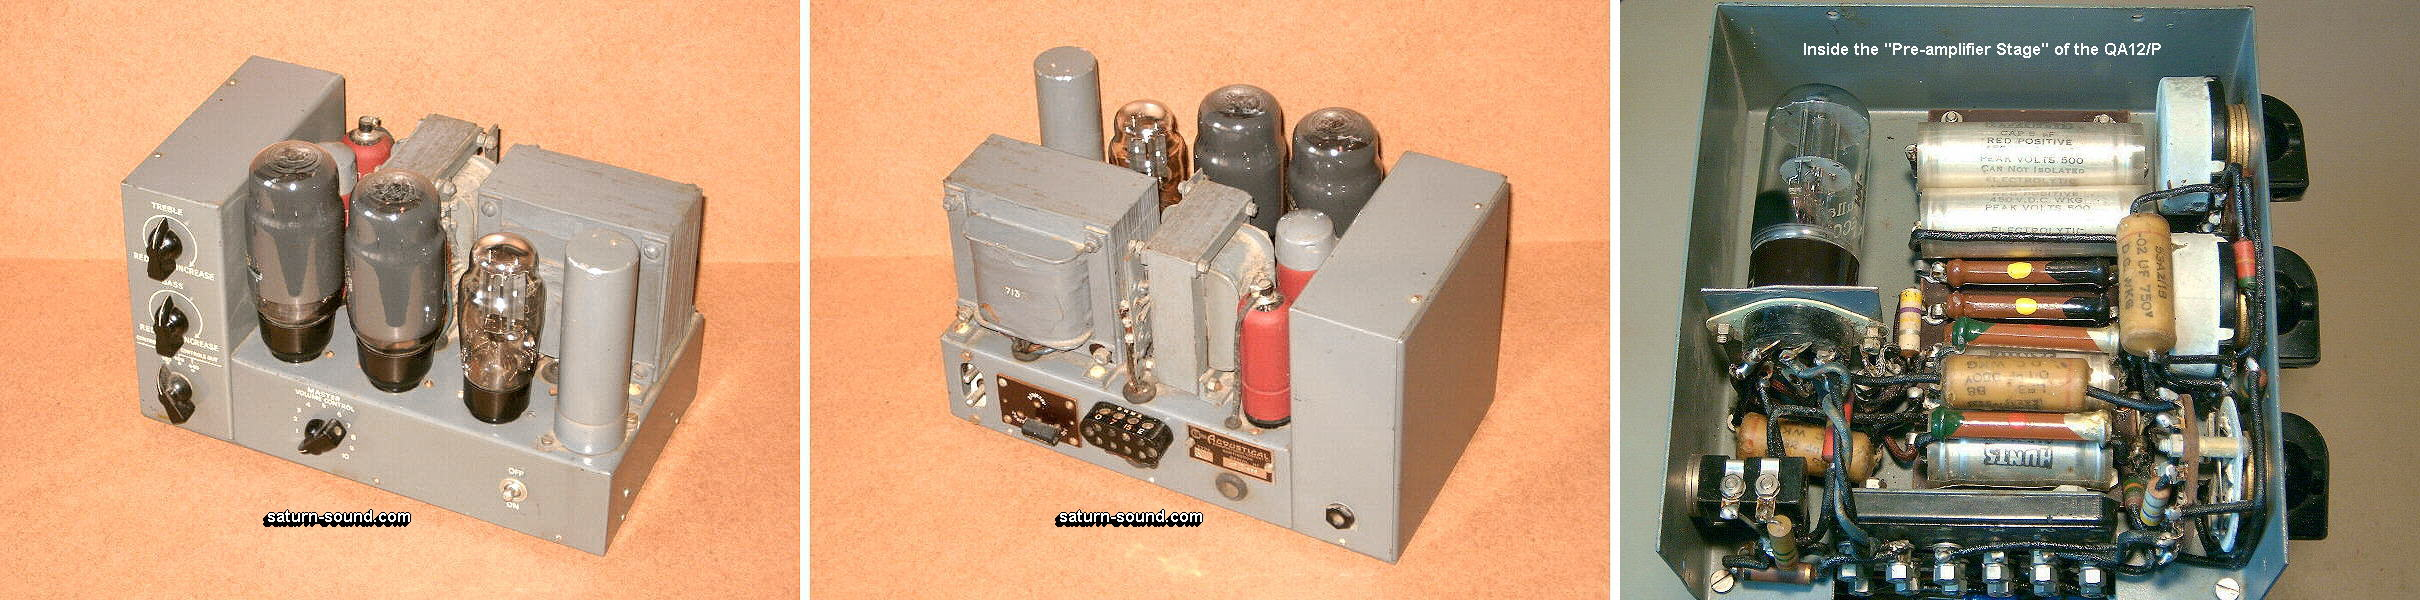 Dr G Visco Official Home Page Hifi Tubes Rebuild Acrosound Diy Electronics I Take Apart My Old Amplifier Circuits For Sale Changing The And With Practically Same Circuit So To Sell This Small Amp Company Must Reach Almost 15 Or 16w Cost Less Use Cheap